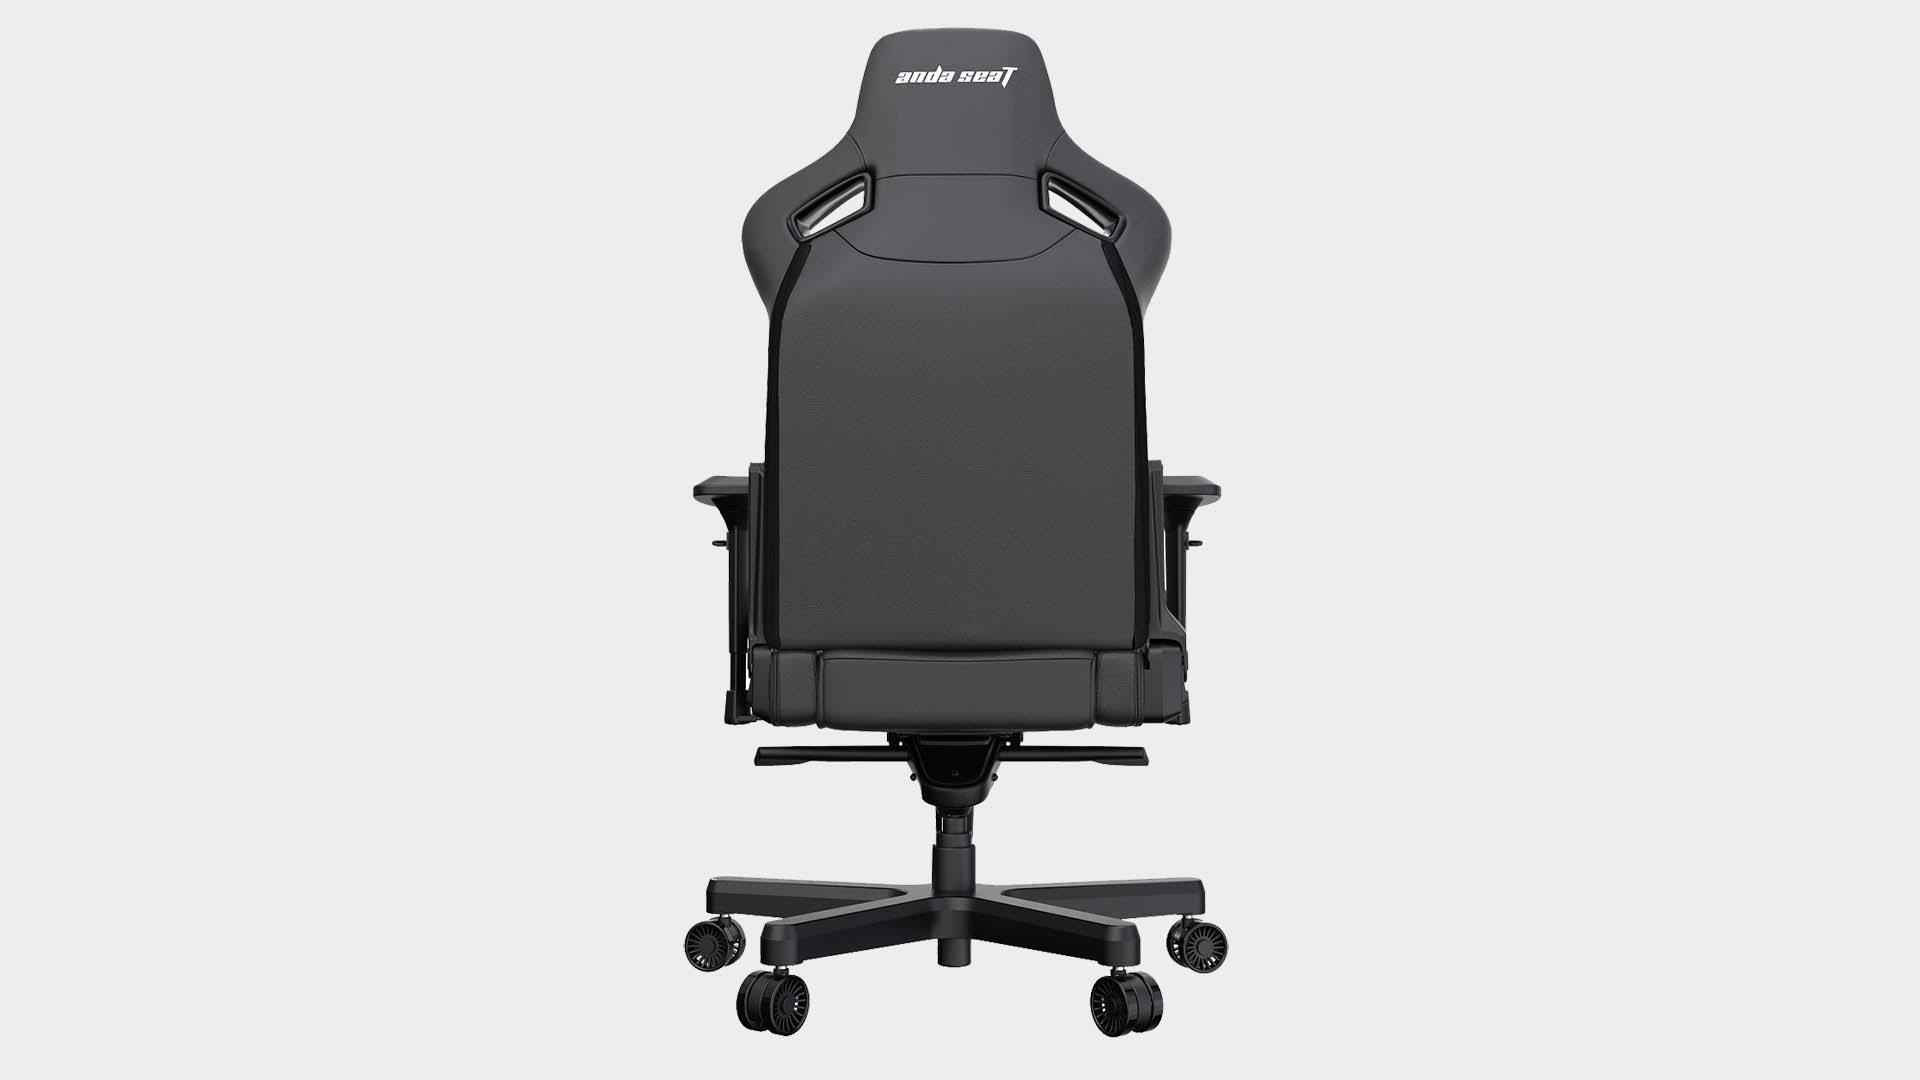 Andaseat Kaiser II gaming chair from various angles on a grey background